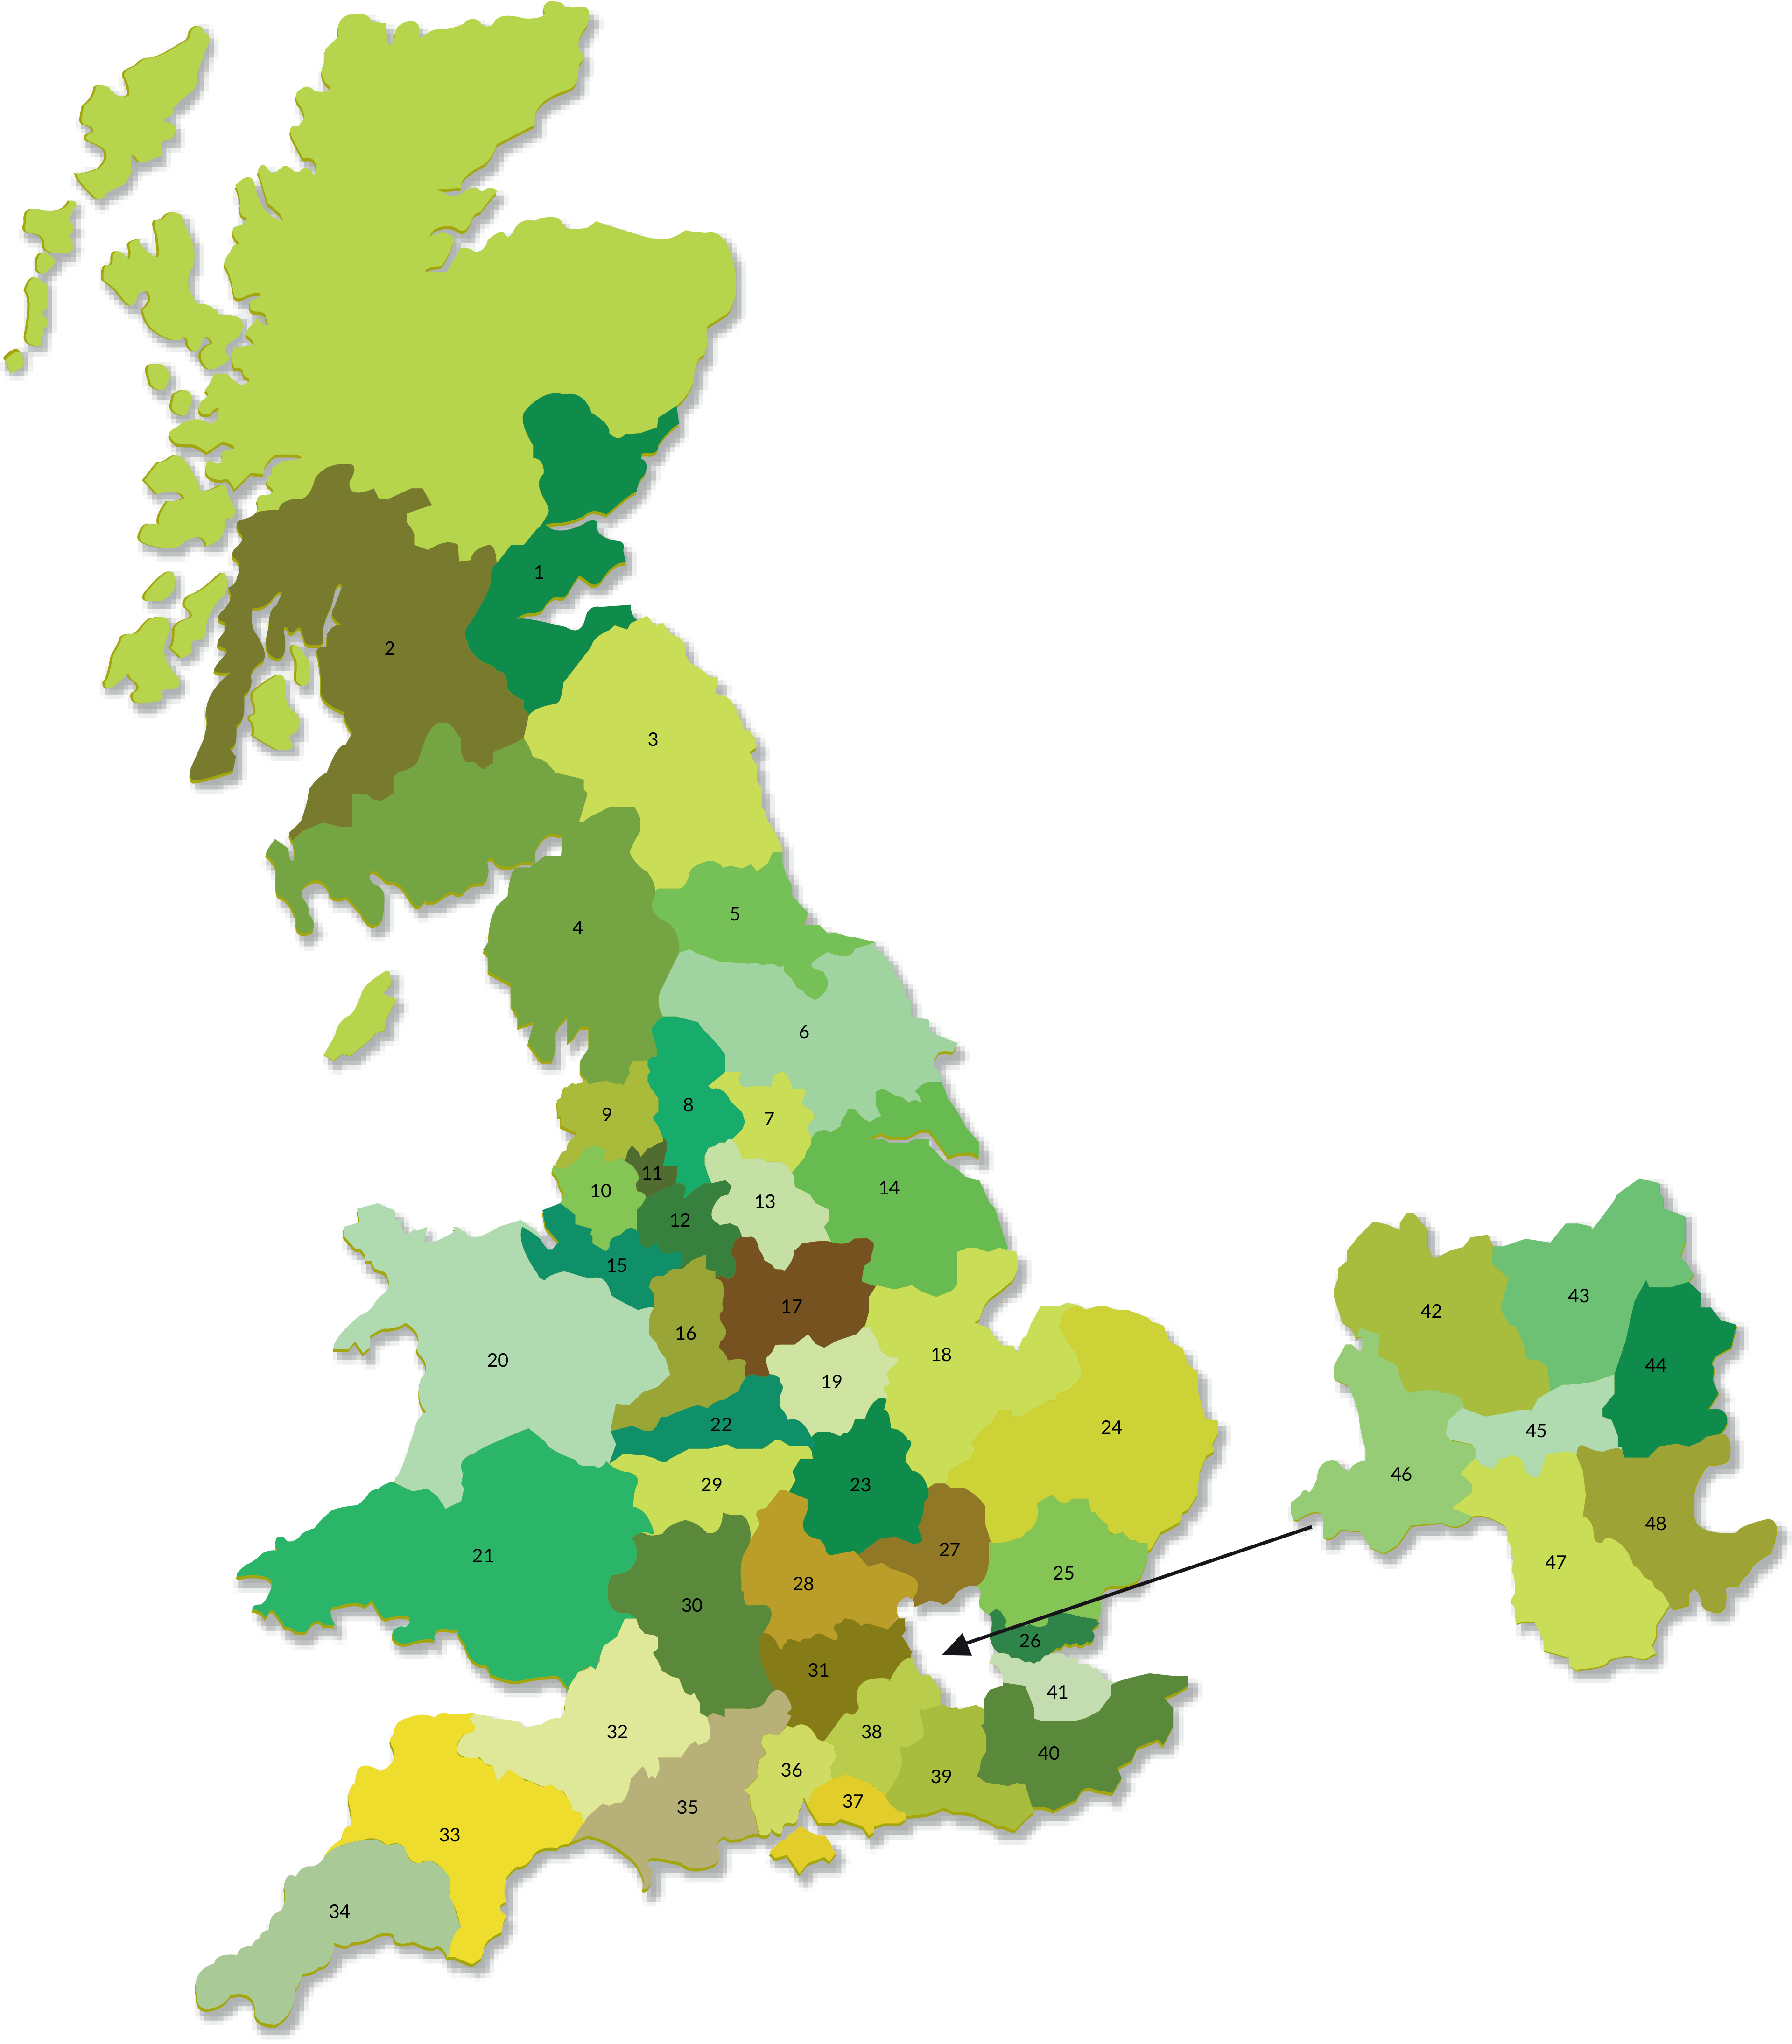 Available franchise areas in the UK